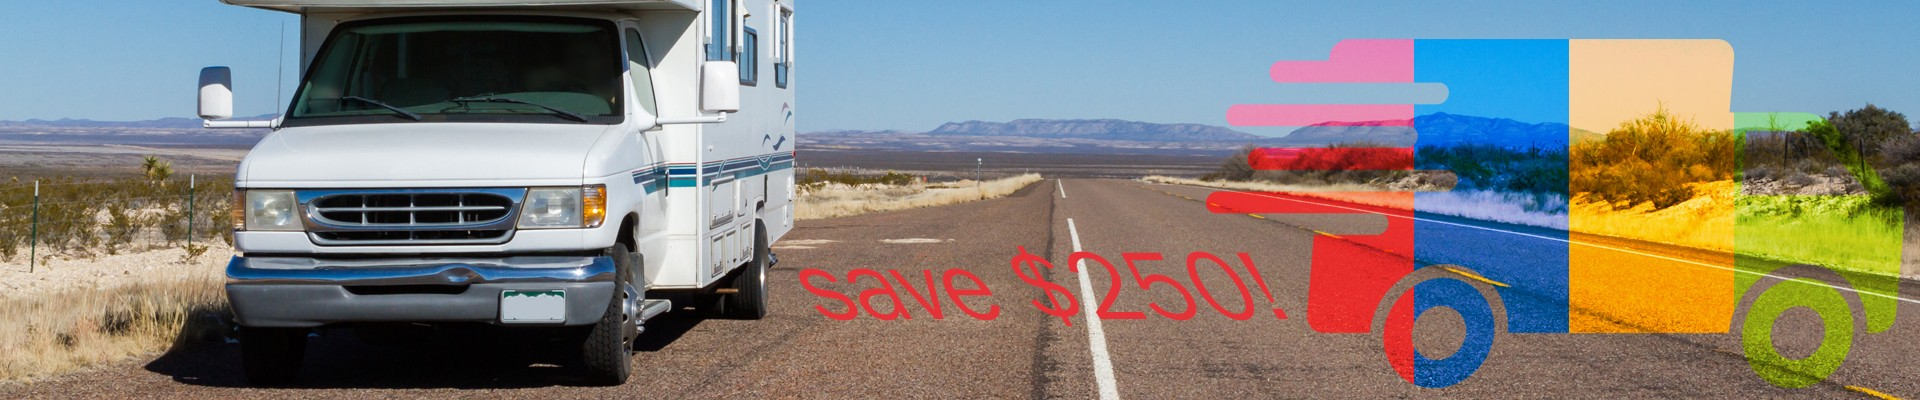 RV Ebay America Beautiful Sale Event save shipping